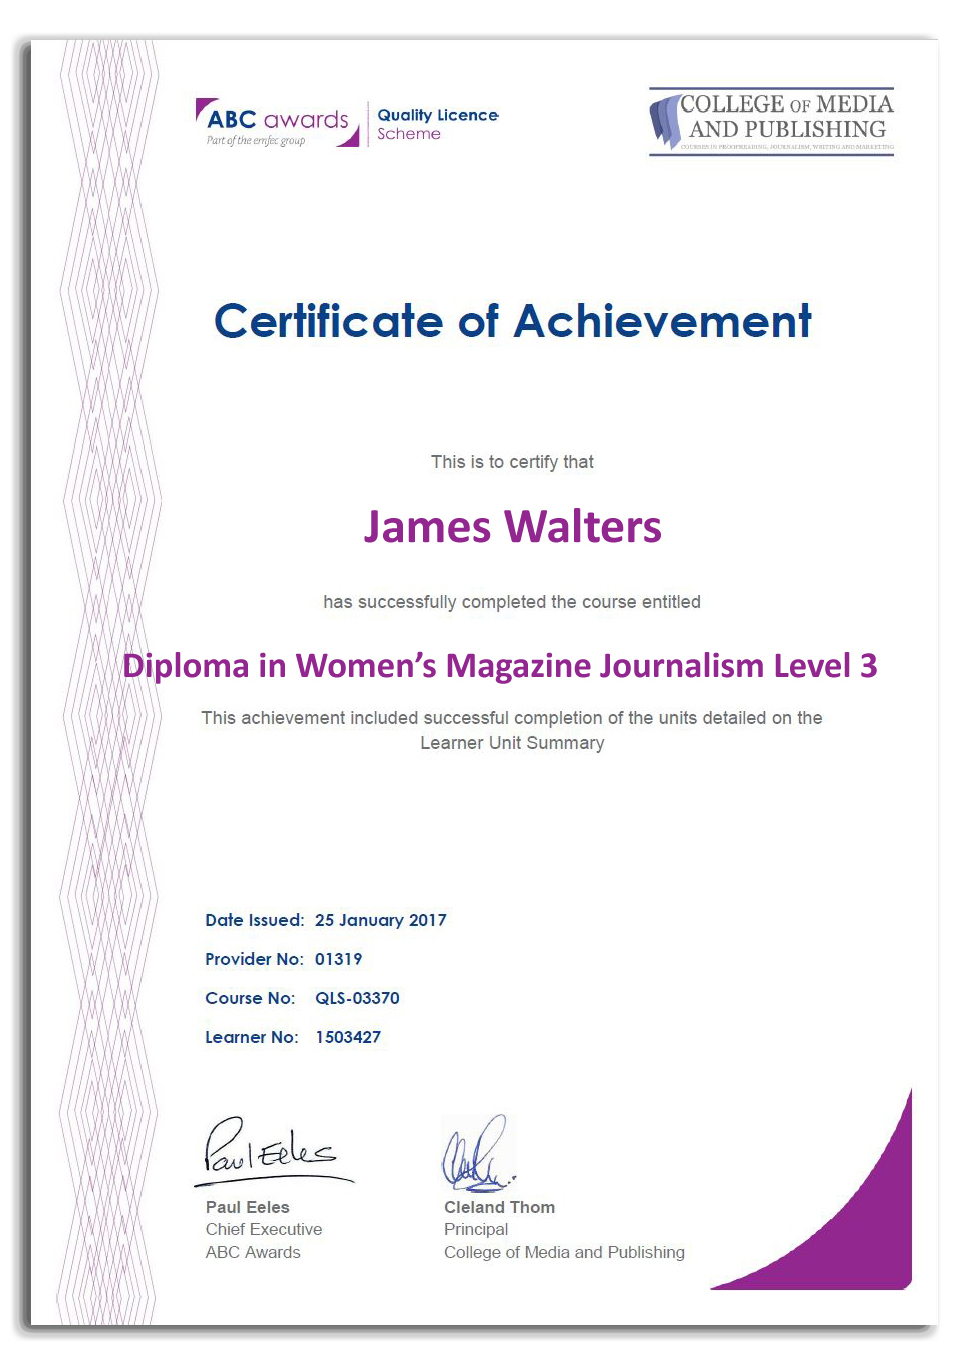 Women's magazine journalism course certificate